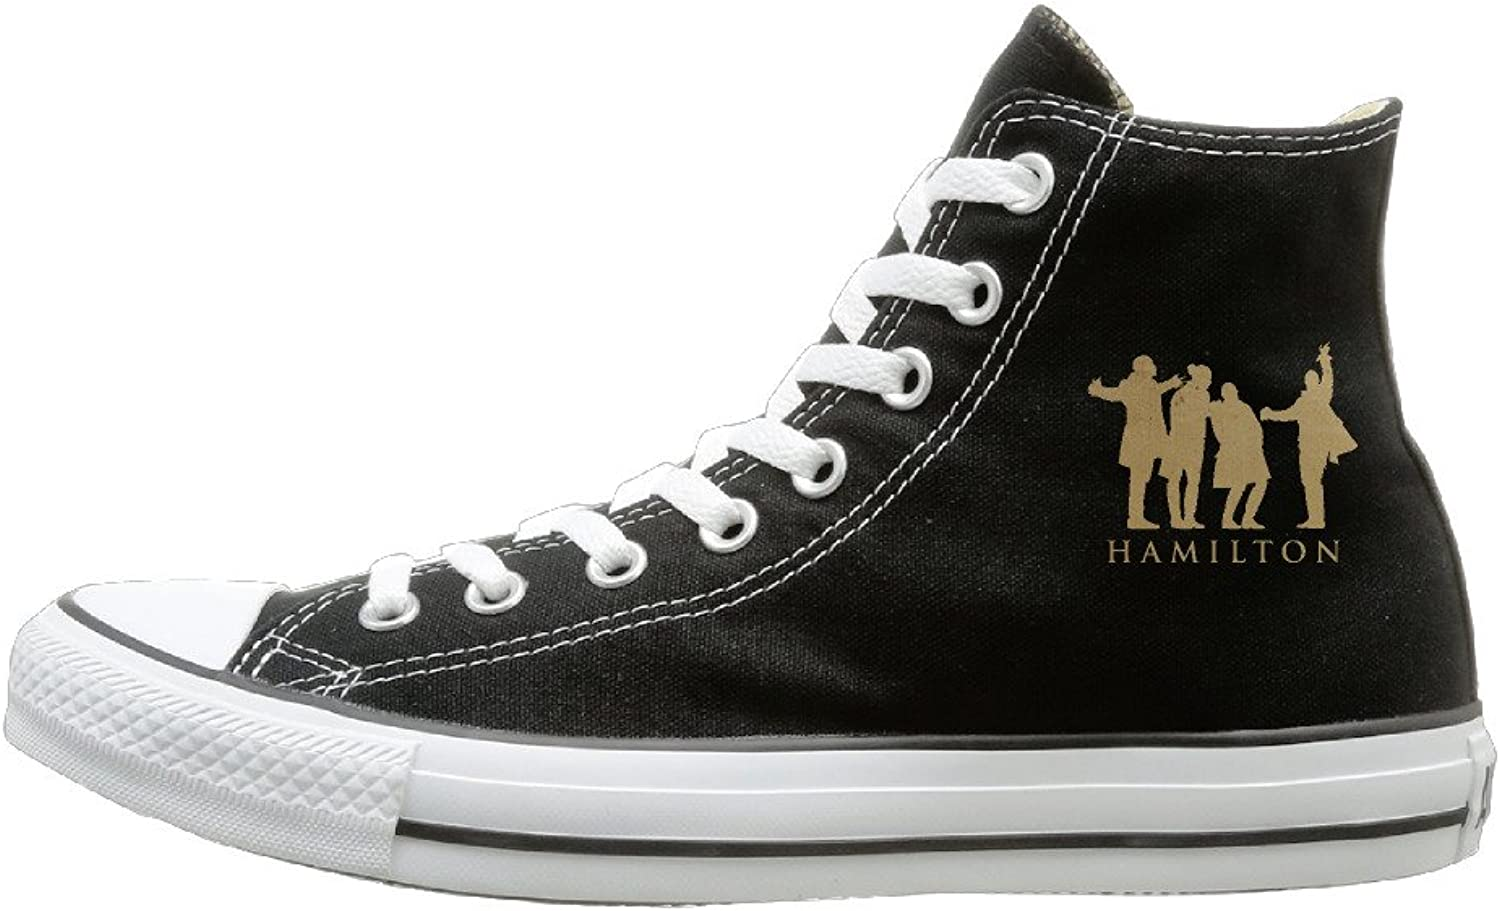 Jajade Unisex Hamilton Music High Top Sneakers Canvas shoes Cool Sport shoes Funny Black